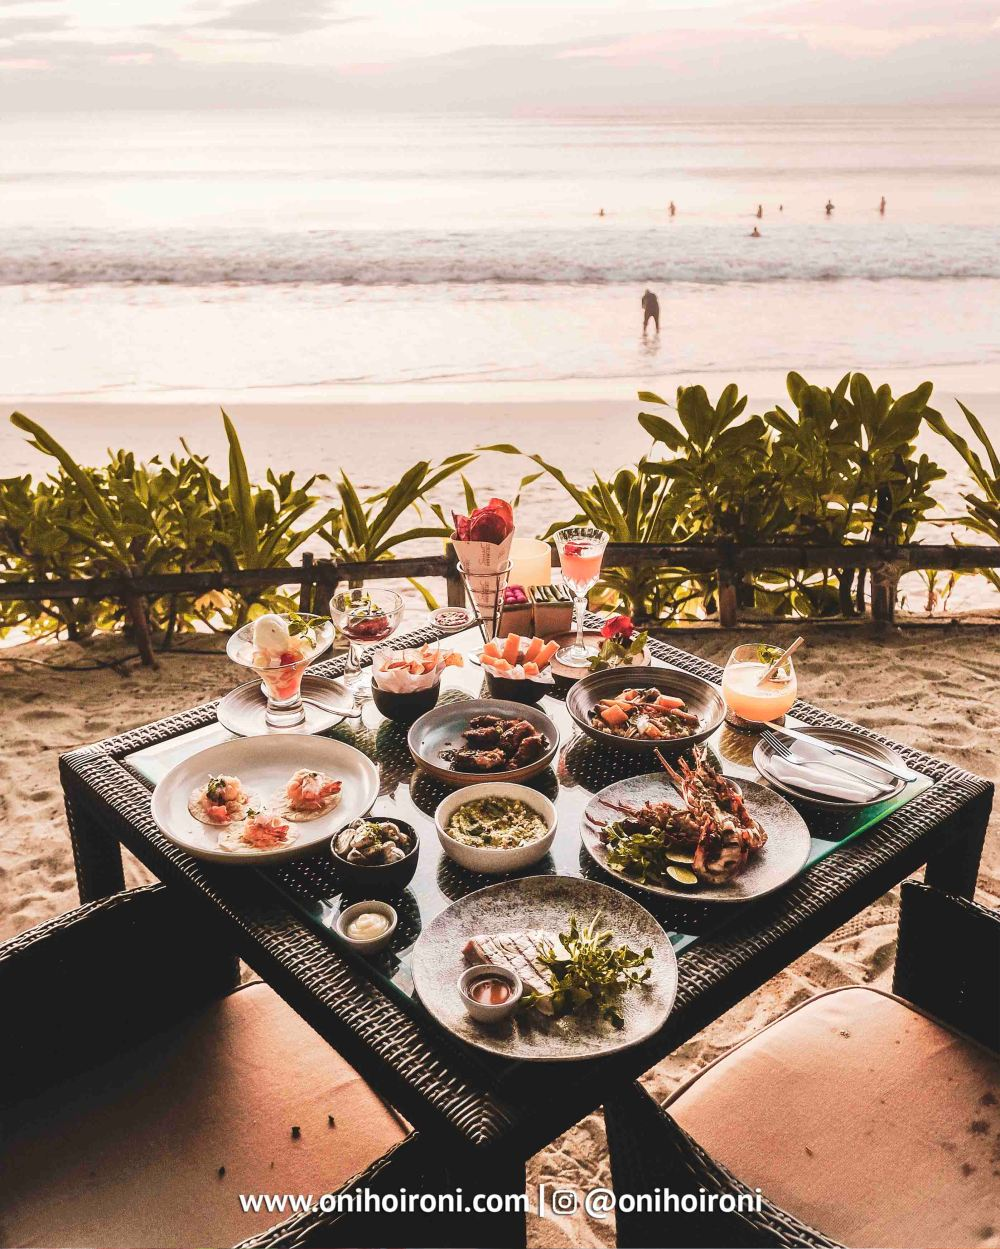 10 food makanan Sunset beach bar and grill intercontinental bali resort oni hoironi restaurant di jimbaran